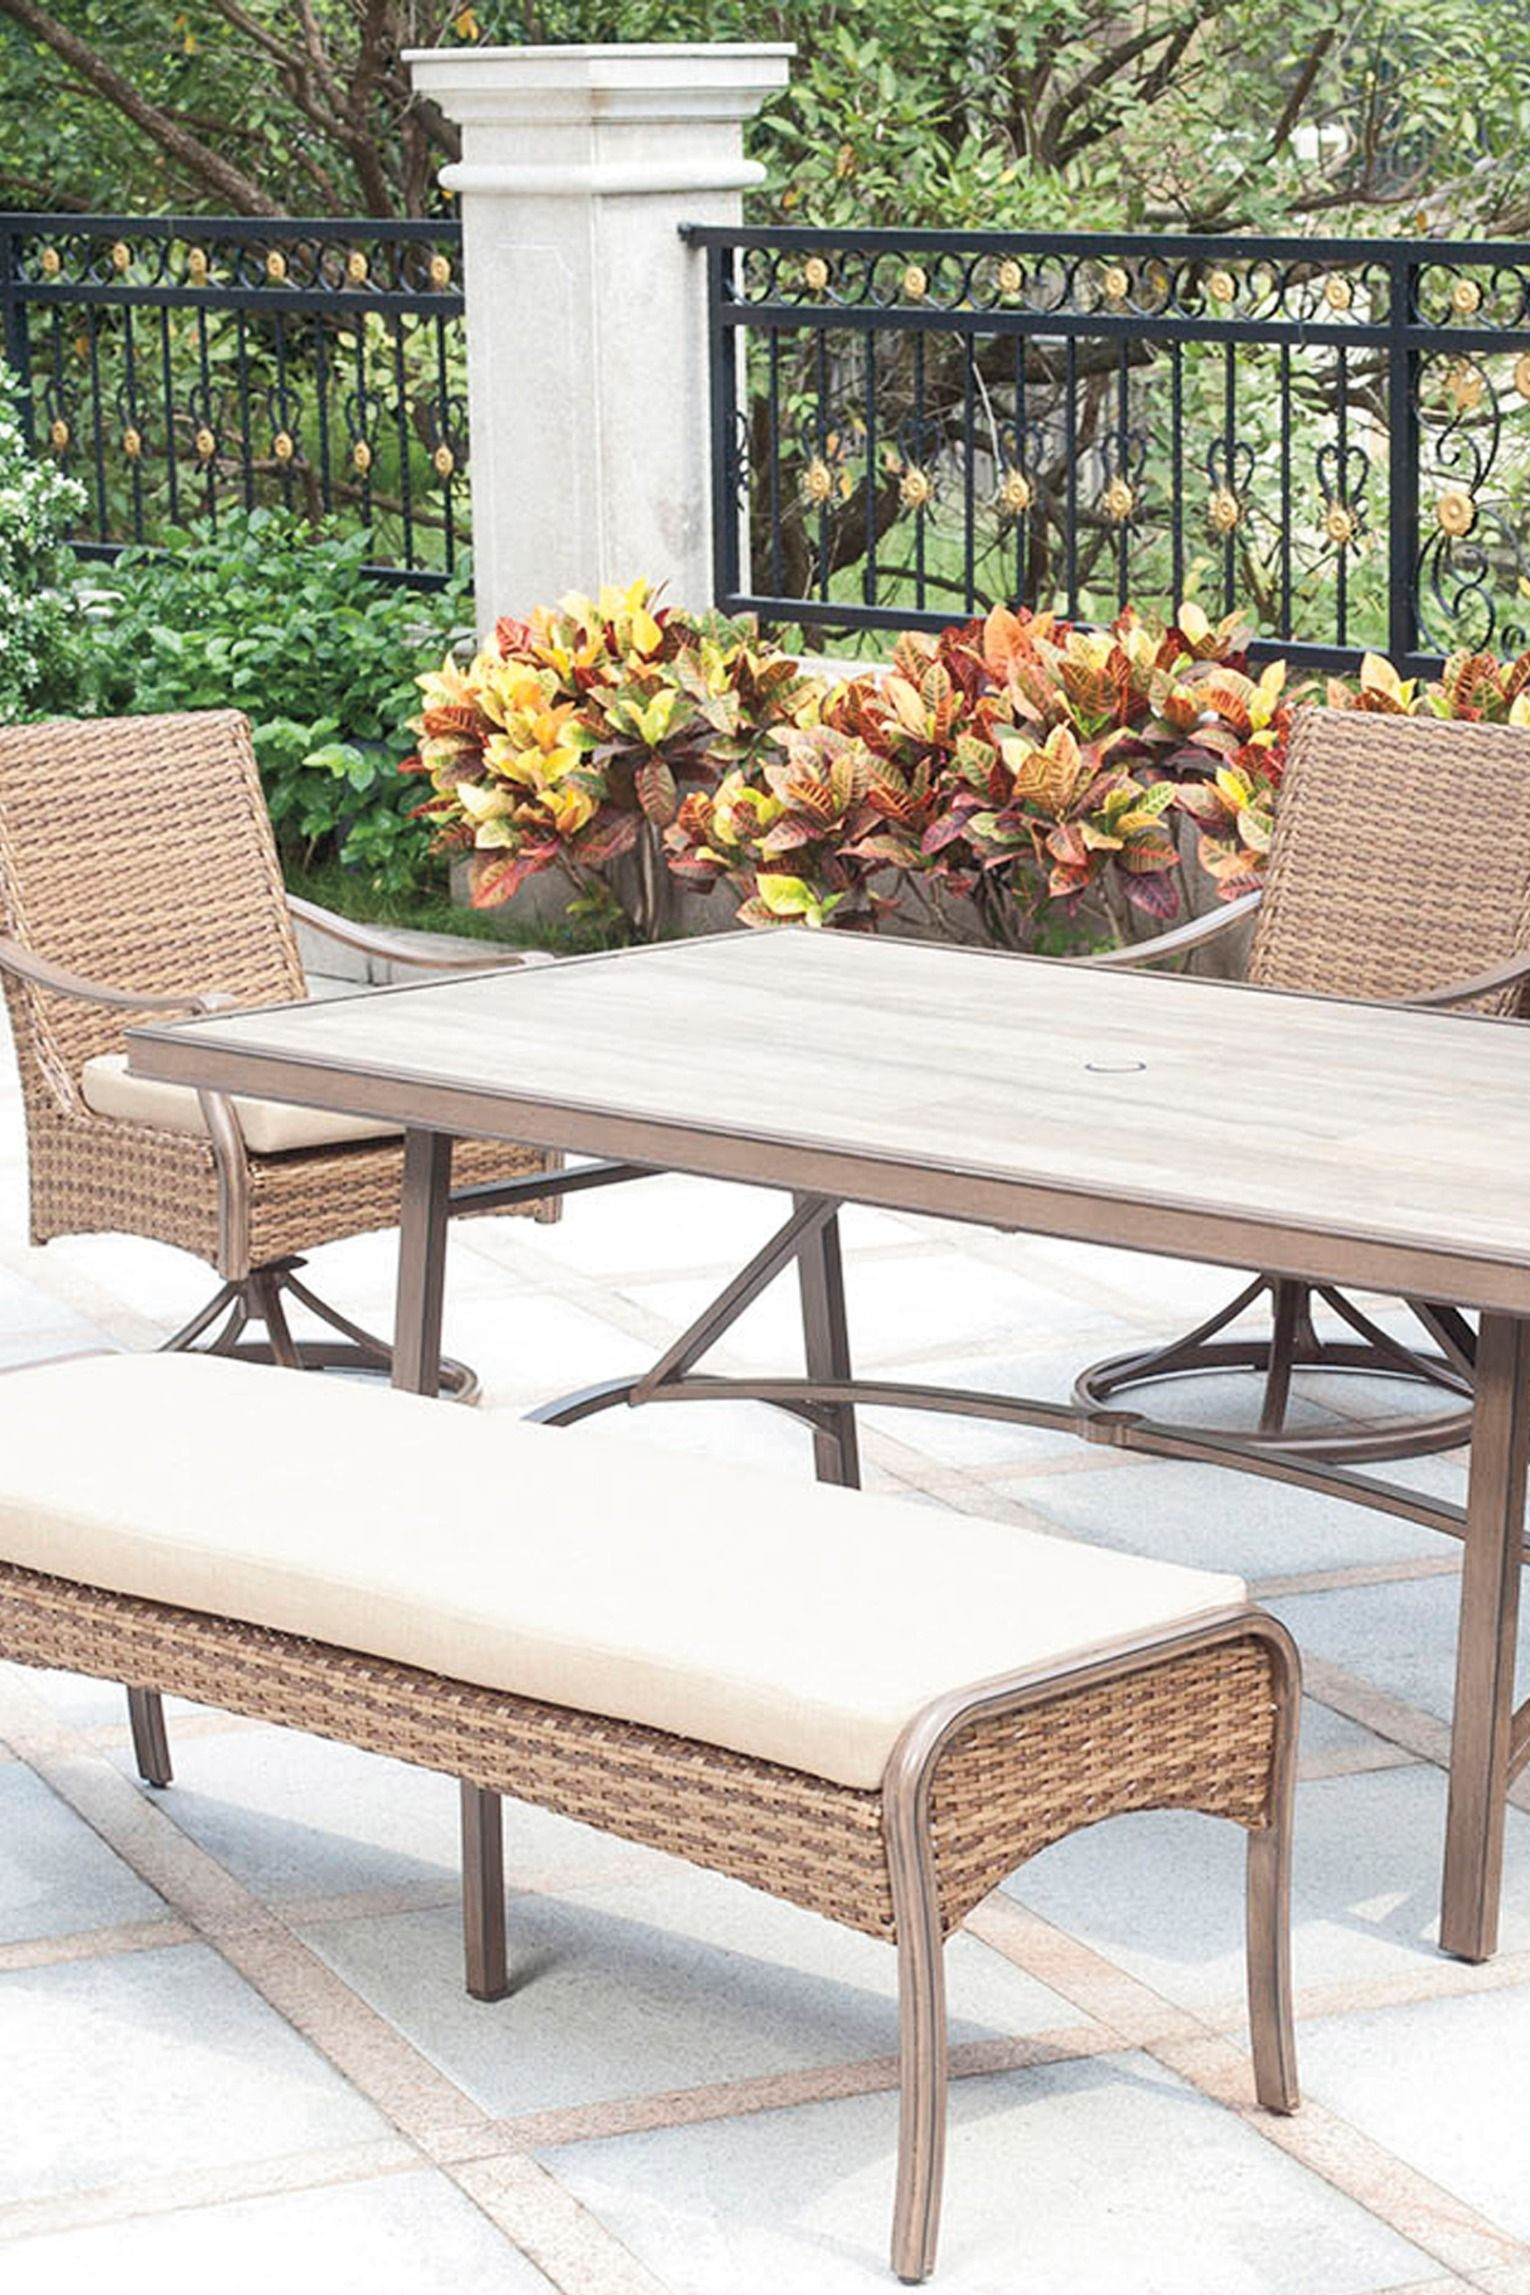 Create a comfortable oasis in your yard with the Palermo